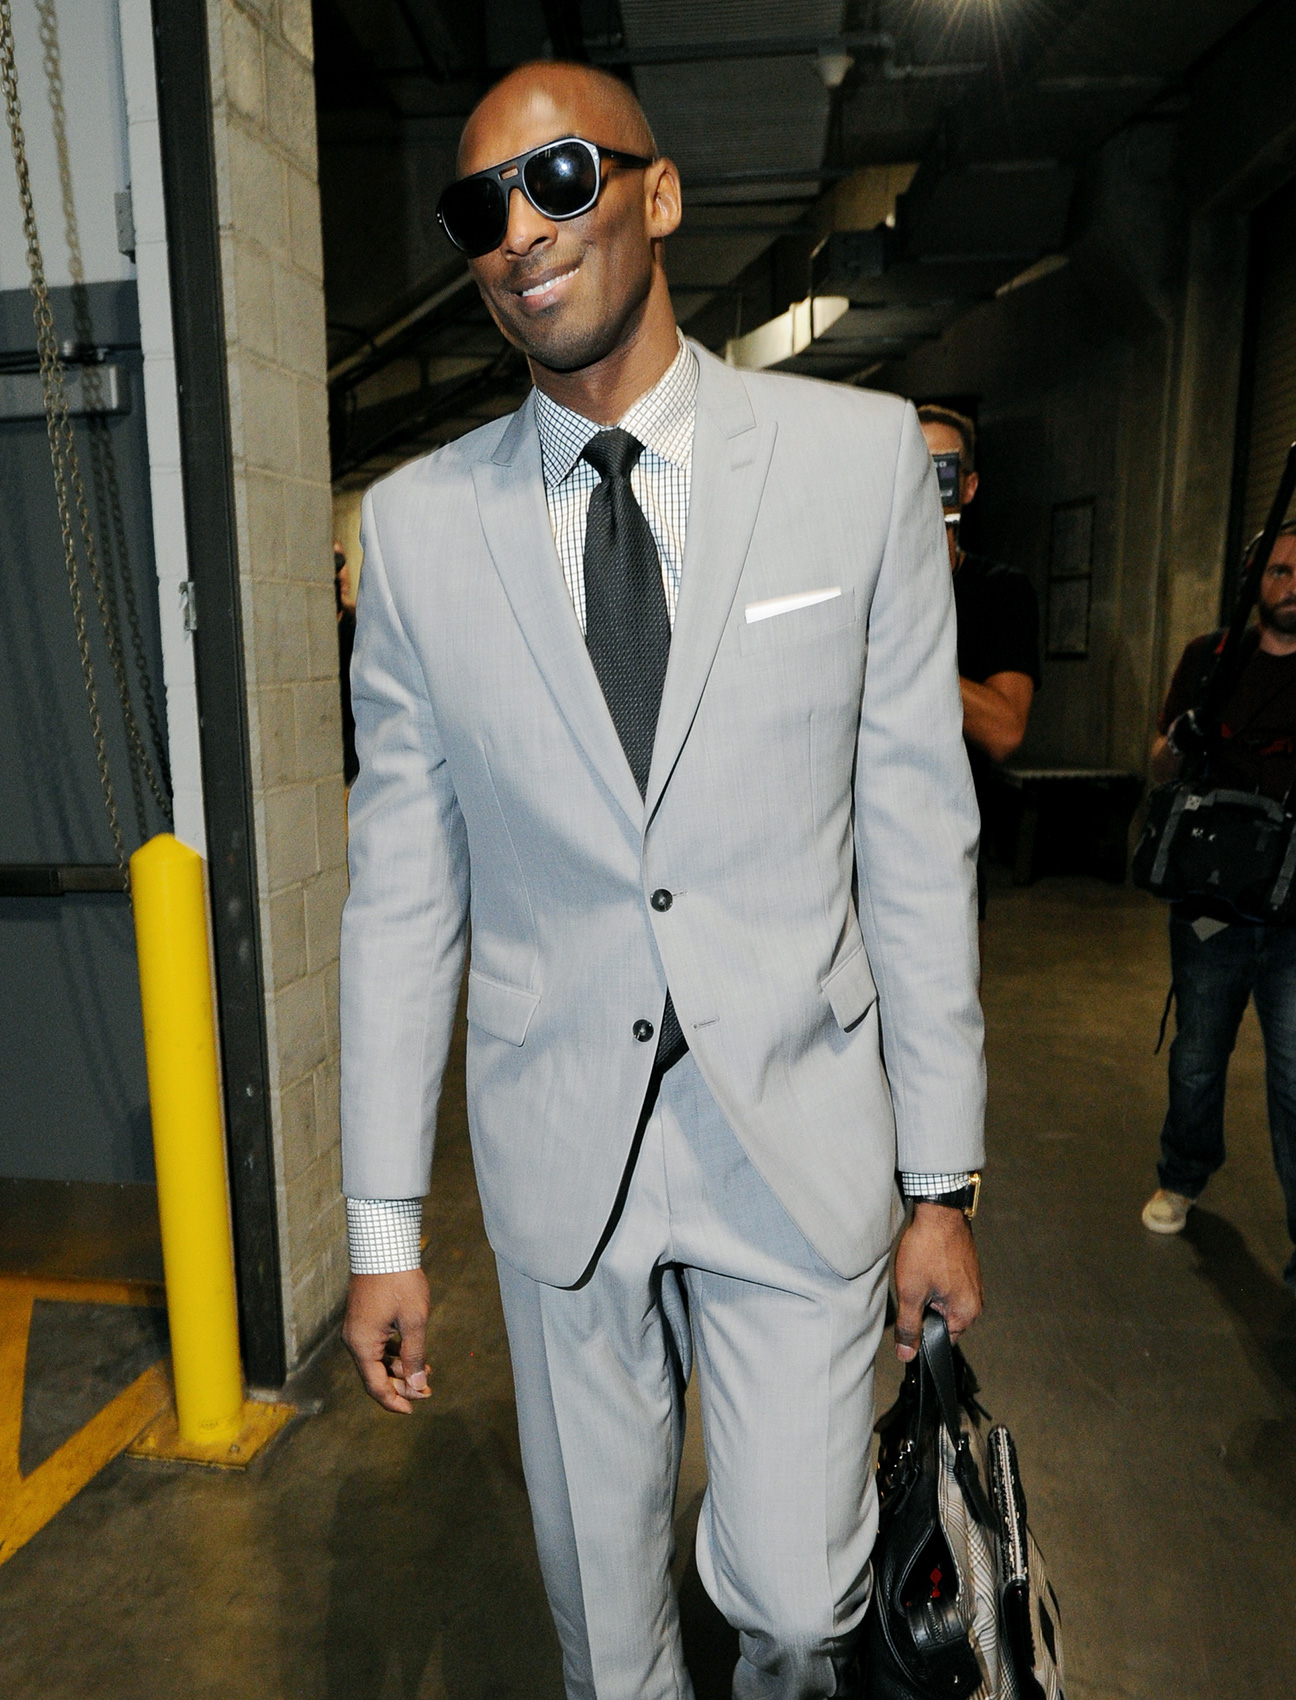 nba dress code rescind it essay The dress code is the solution to many problems in the nba imagine if all of the nba players come out of the locker room with nice clean suits with this in mind, the players will make a better image of them and will set an excellent example towards their fans, especially kids.